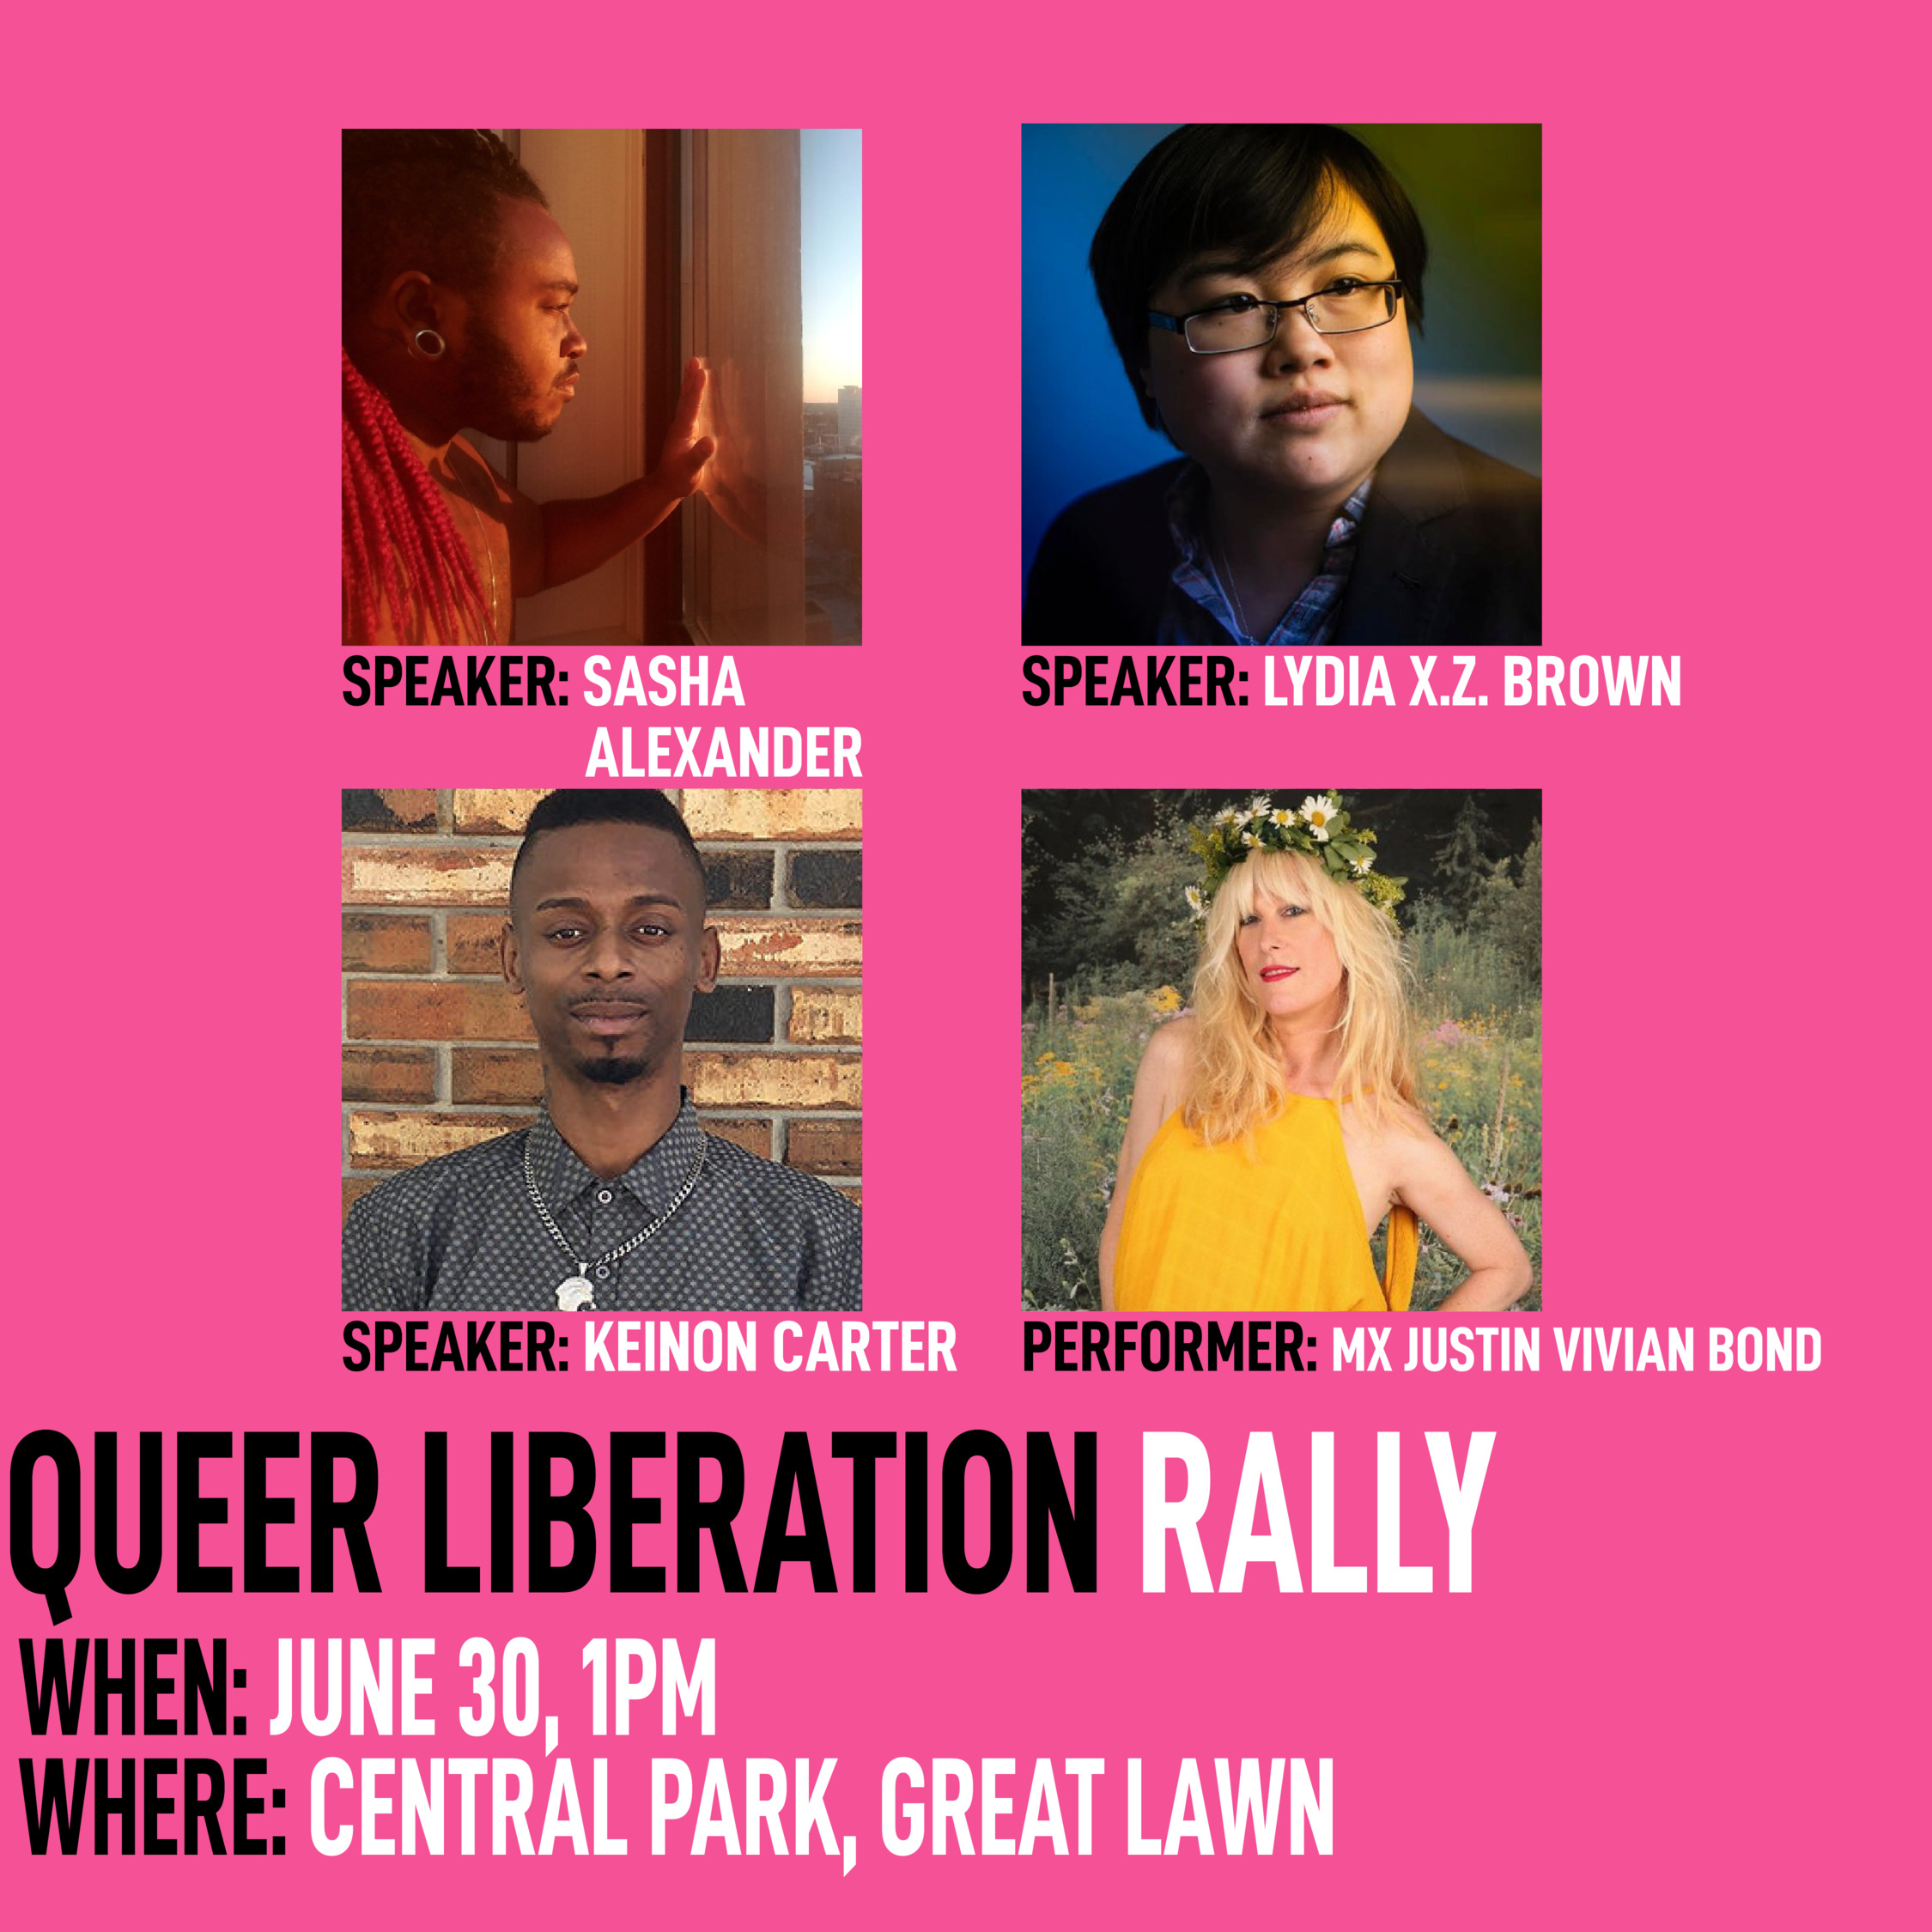 [RPC] Queer Liberation Rally Speakers 4 Square2.jpg